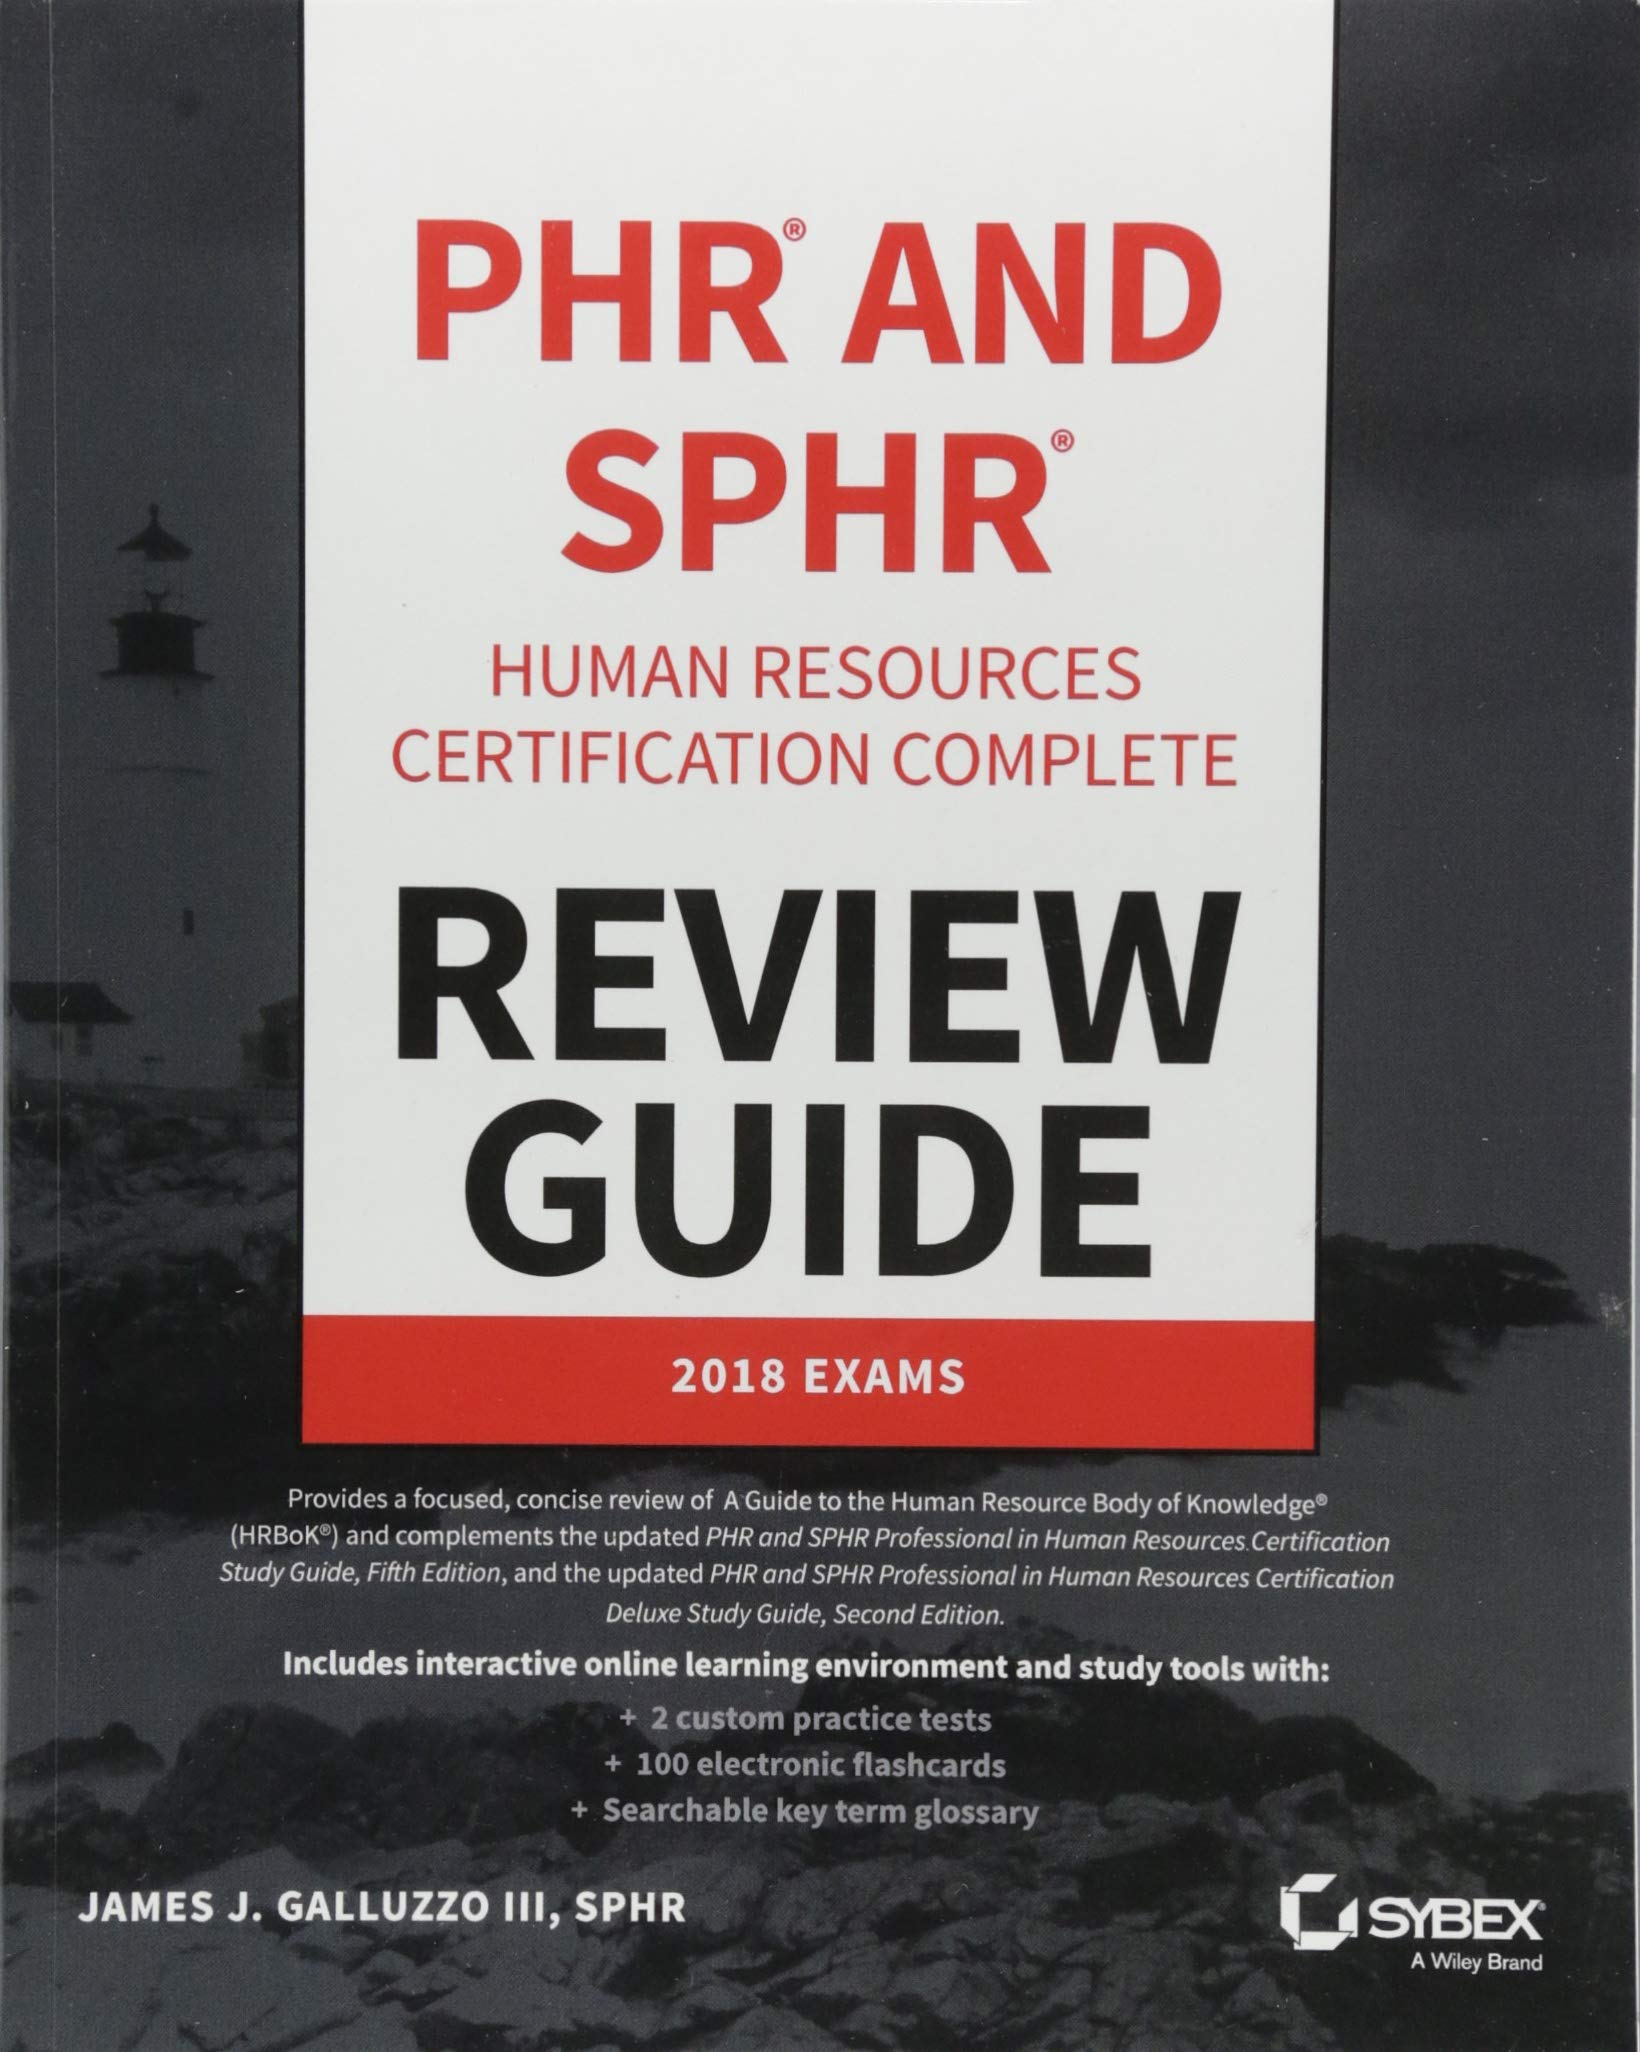 Phr And Sphr Professional In Human Resources Certification Complete